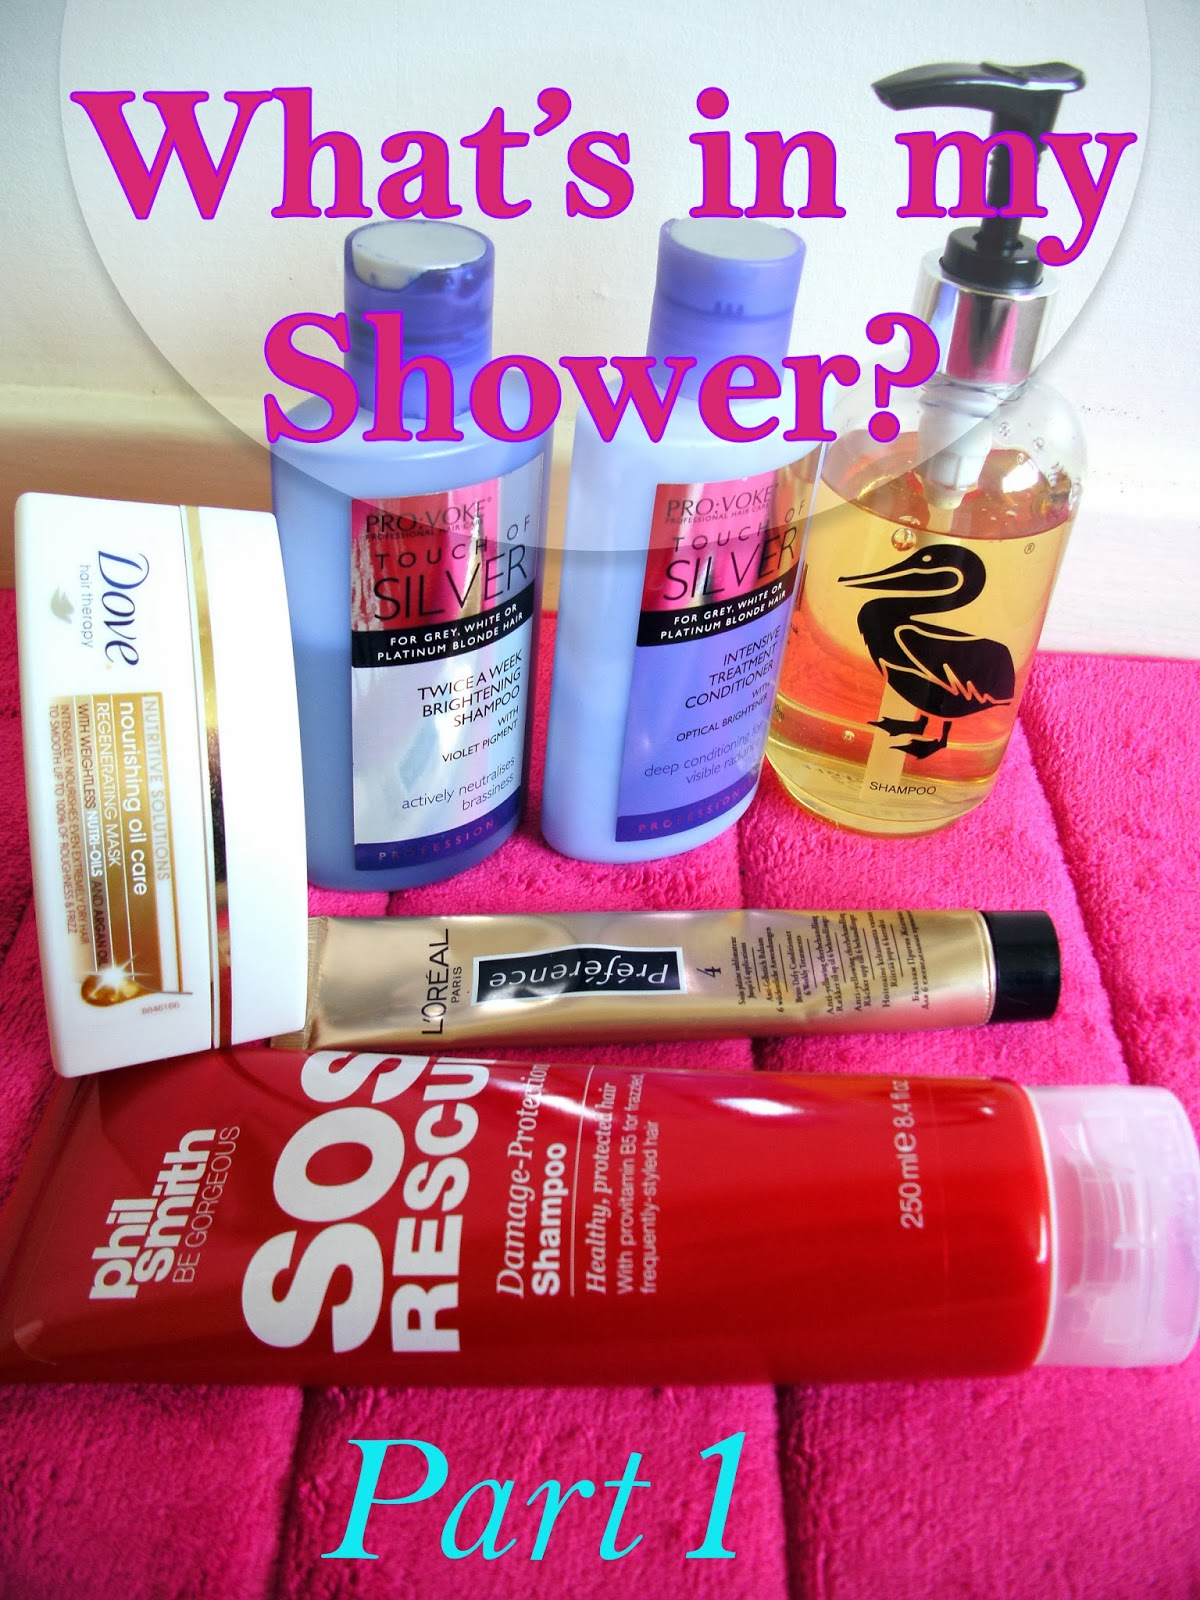 What's in my Shower - Dove Nourishing Oil Care Hair Mask, PRO:VOKE Touch of Silver Twice A Week Brightening Shampoo & Treatment Conditioner, Duck Island Mandarin & Bergamot Shampoo,  Phil Smith SOS Shampoo and L'Oreal Brass Defy Conditioner